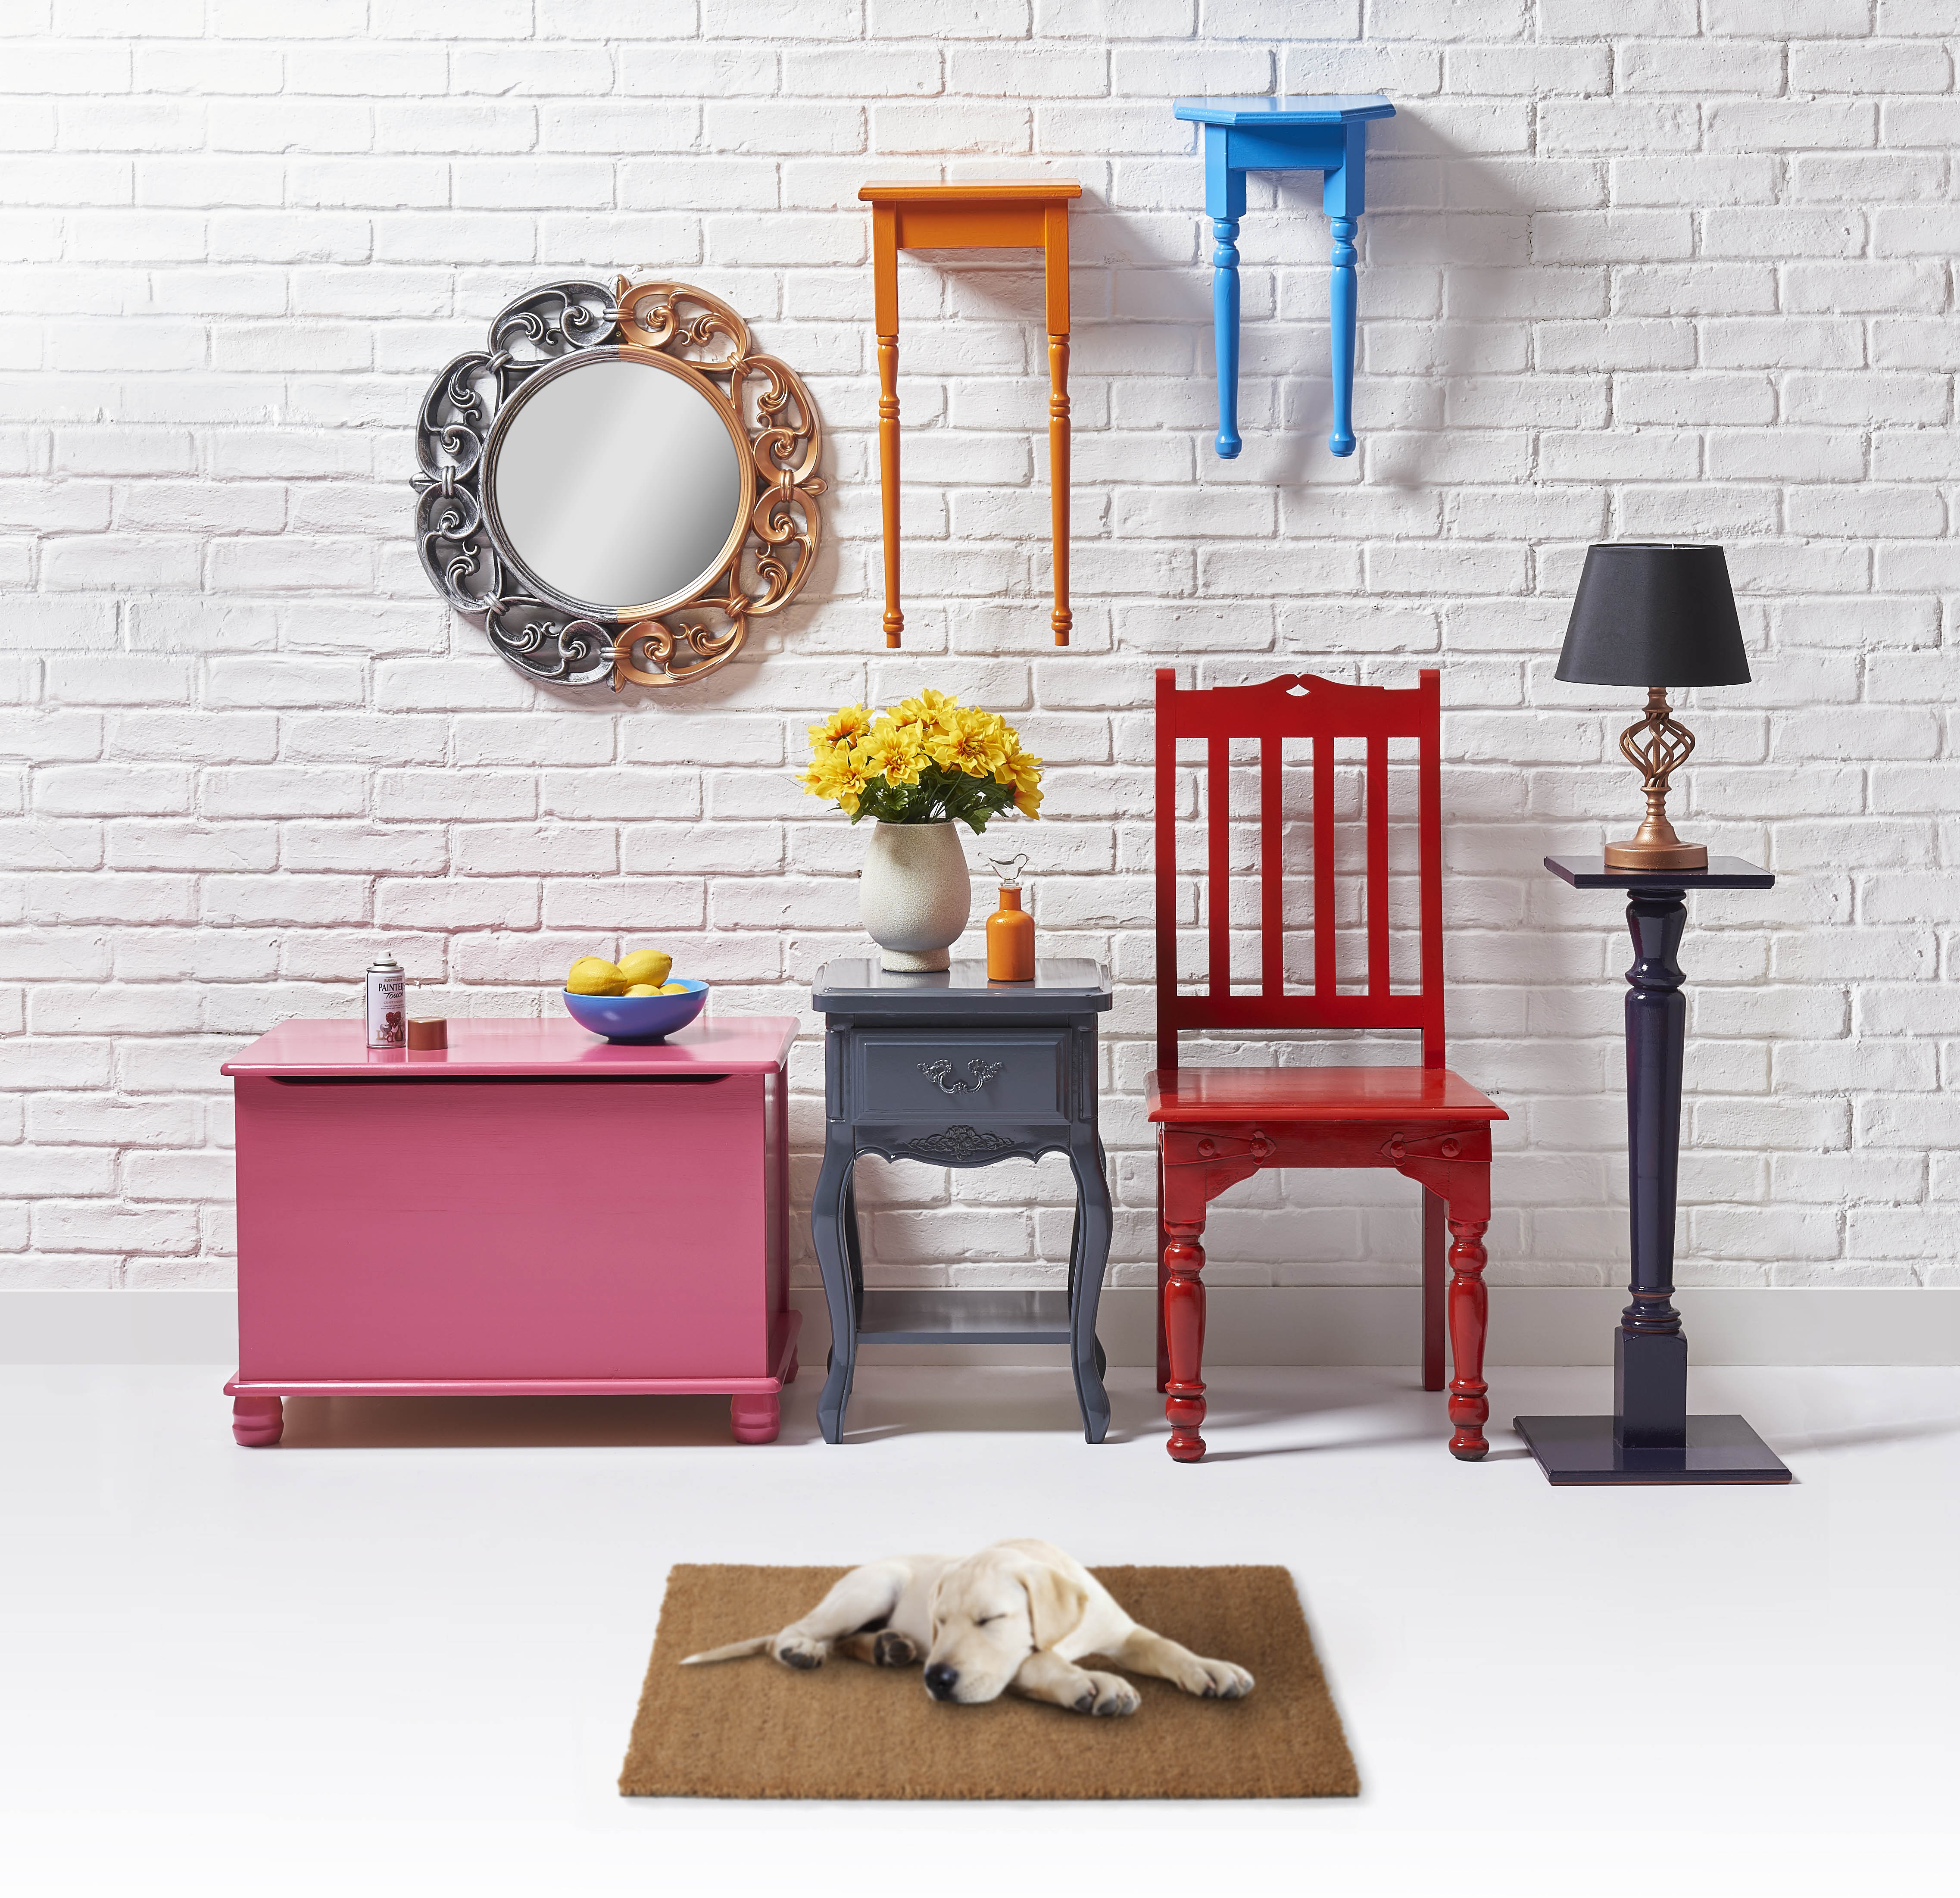 Upcycle Your Furniture With Wilko Paint